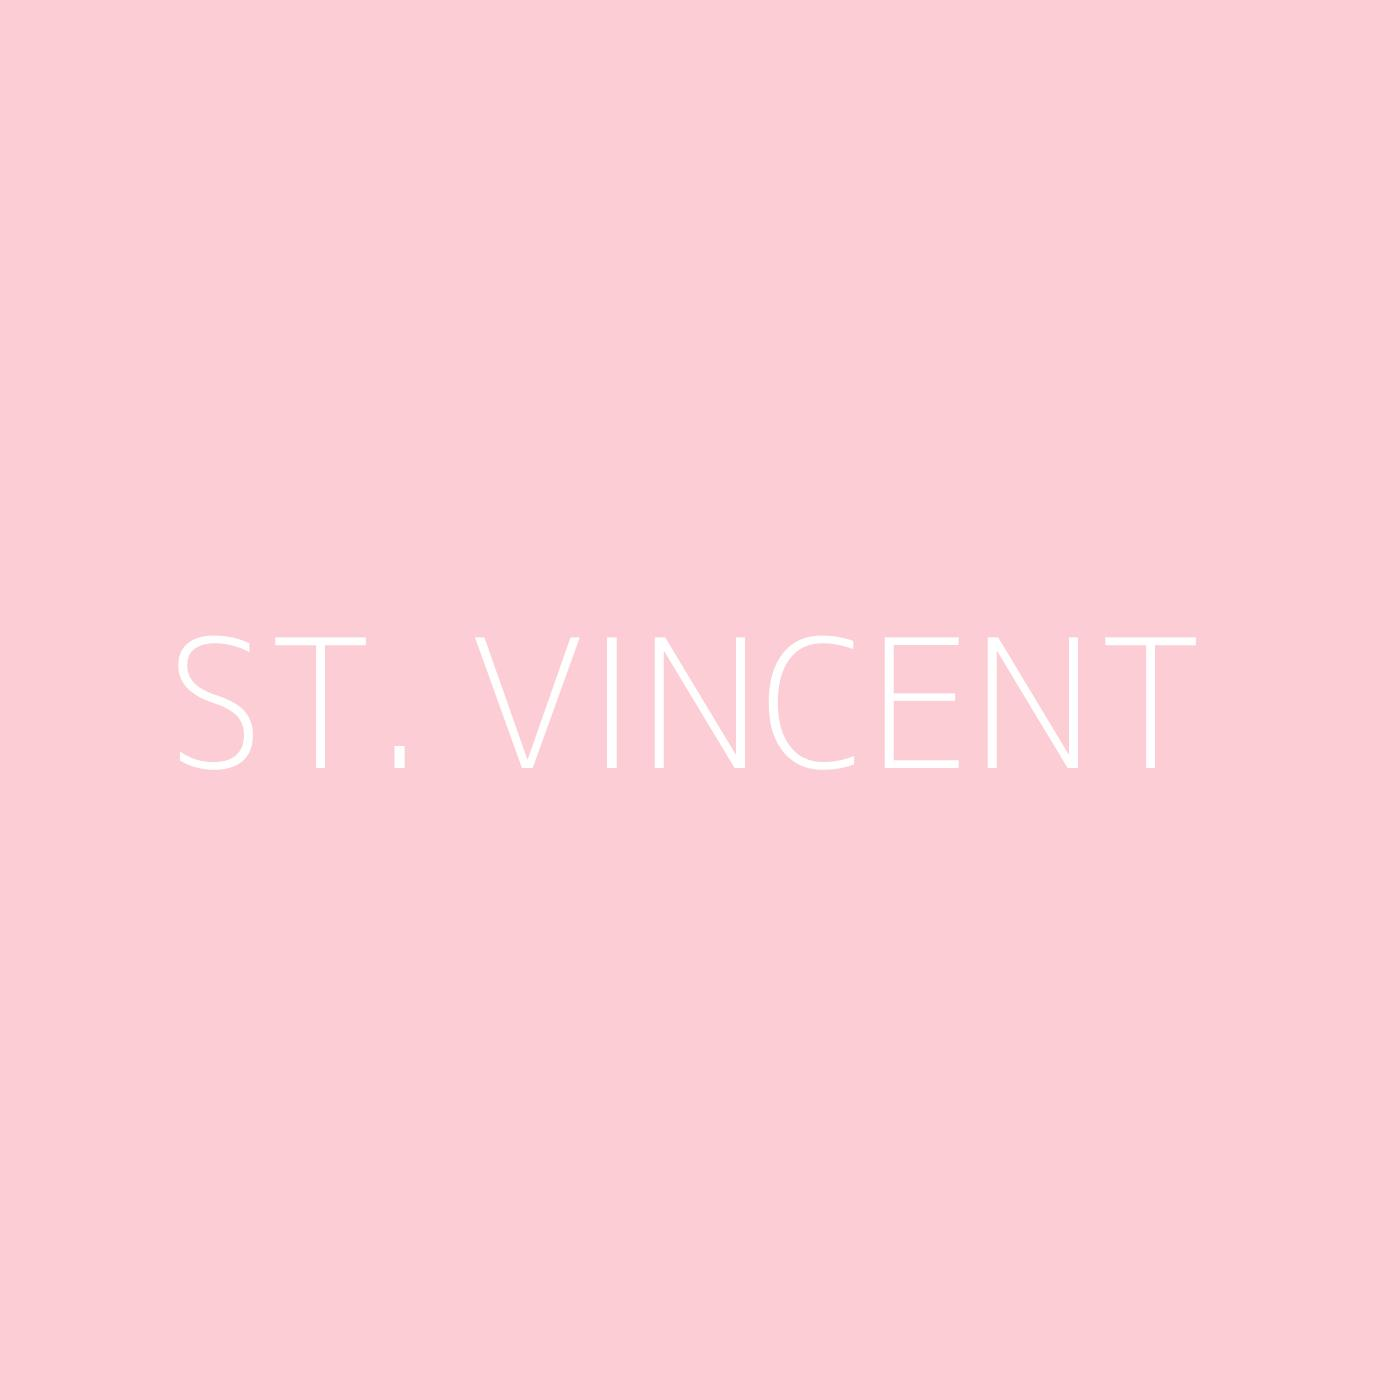 St. Vincent Playlist Artwork